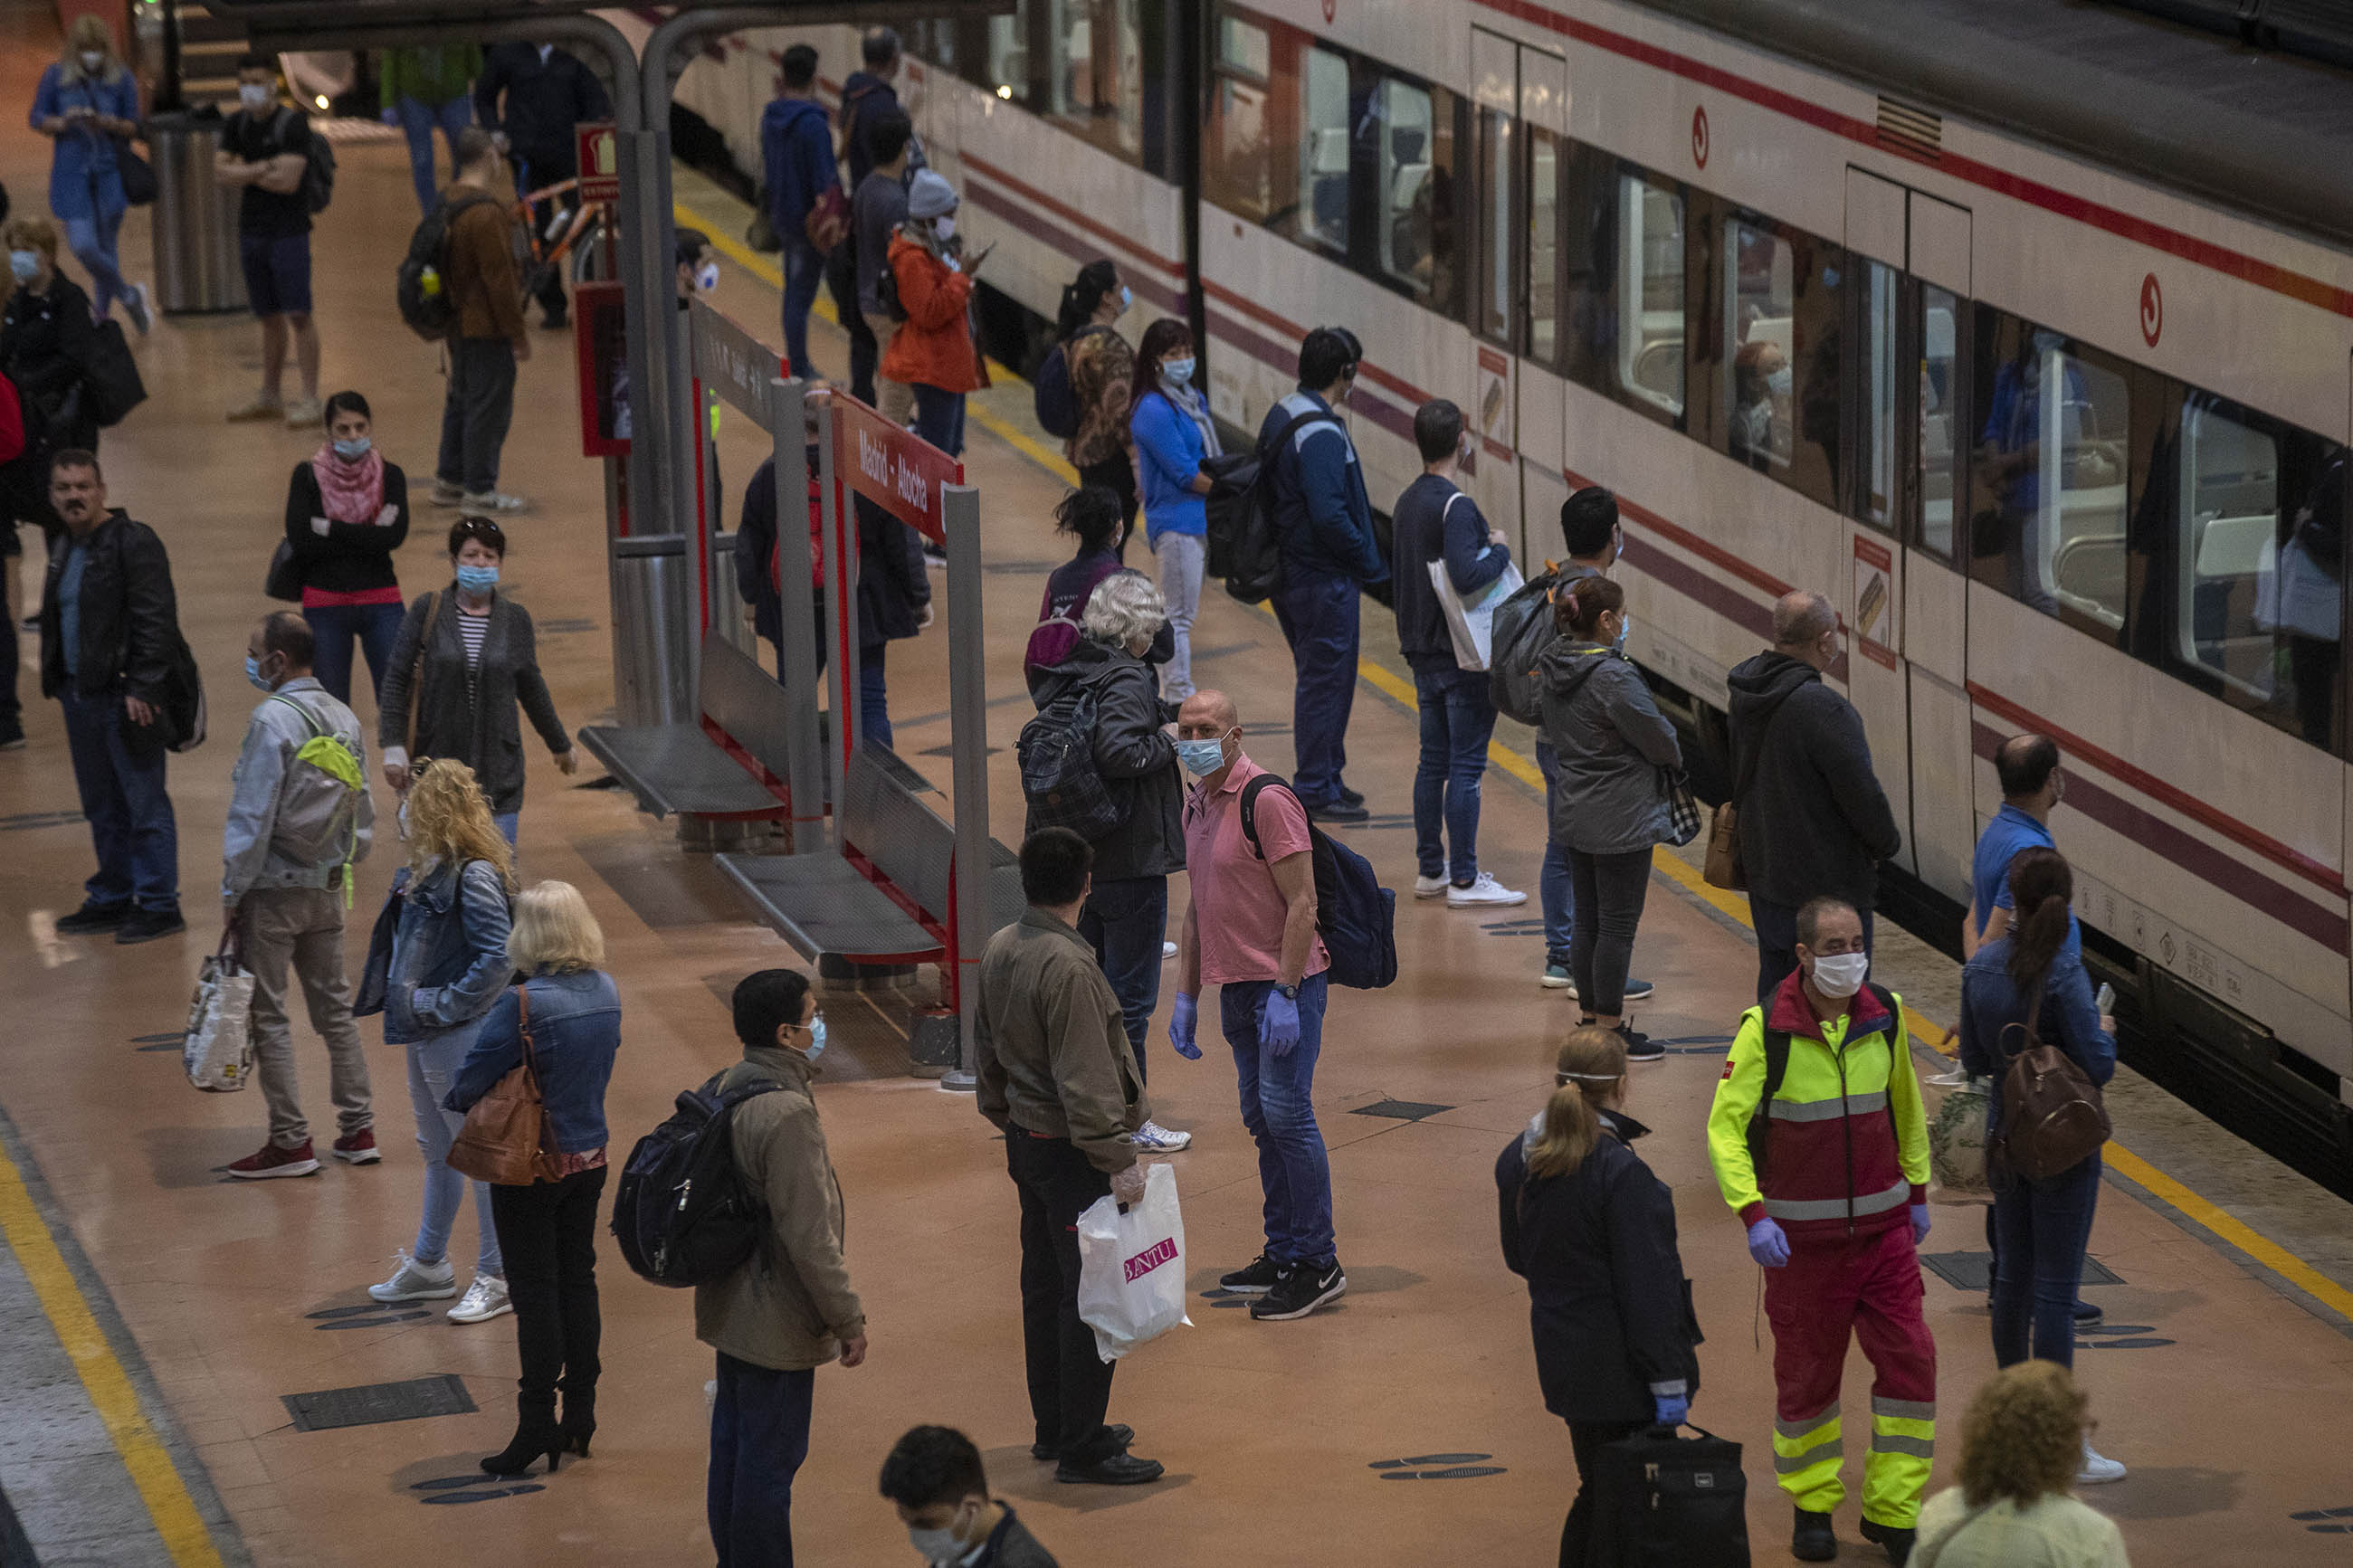 Commuters wear face masks to protect against coronavirus on a platform at Atocha train station in Madrid, Spain, on Monday, May 4.